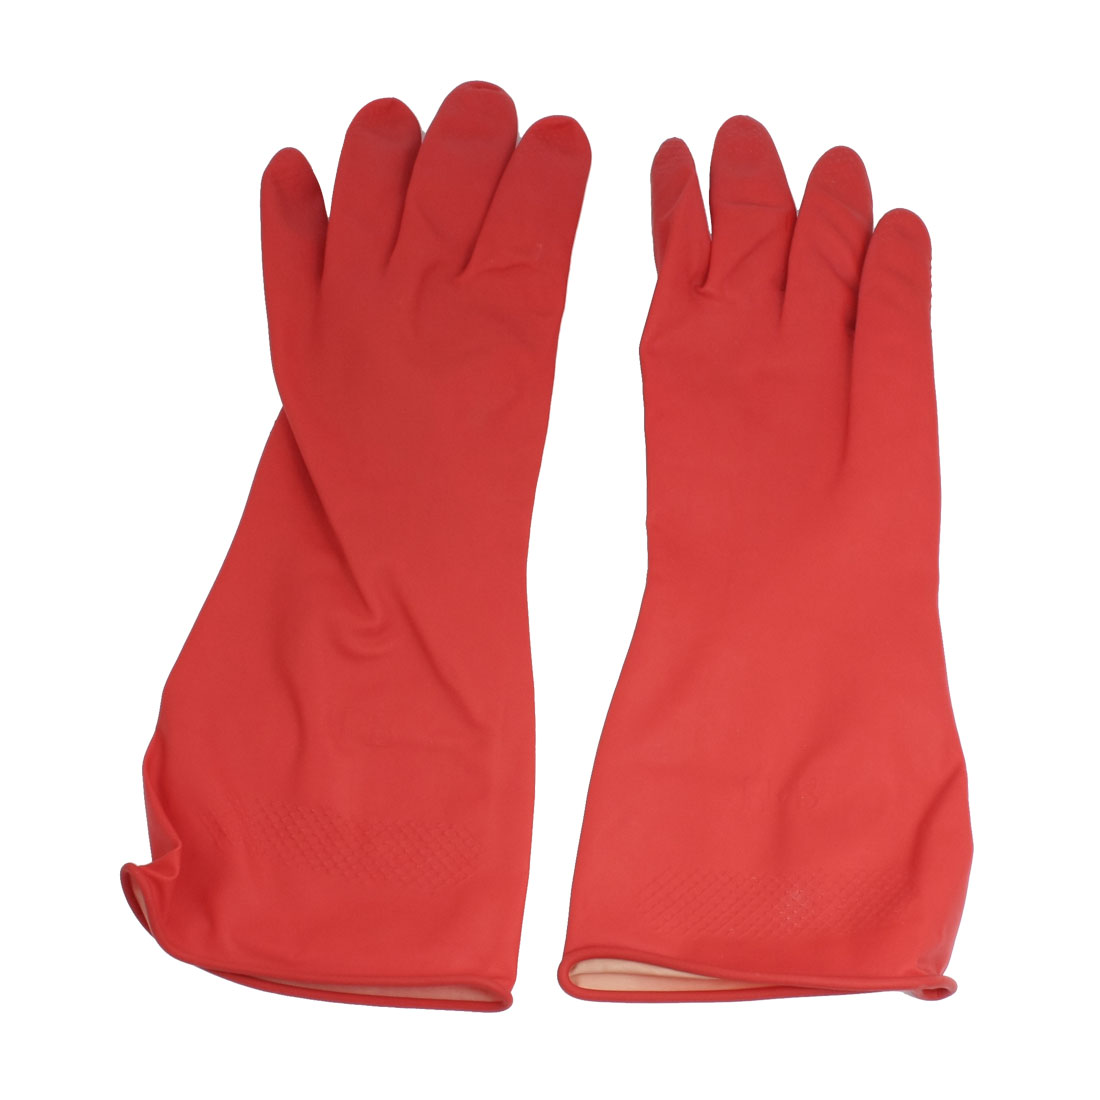 Unique Bargains Kitchen Dishwashing Wash Clean Latex Rubber Long Work Gloves Red Pair